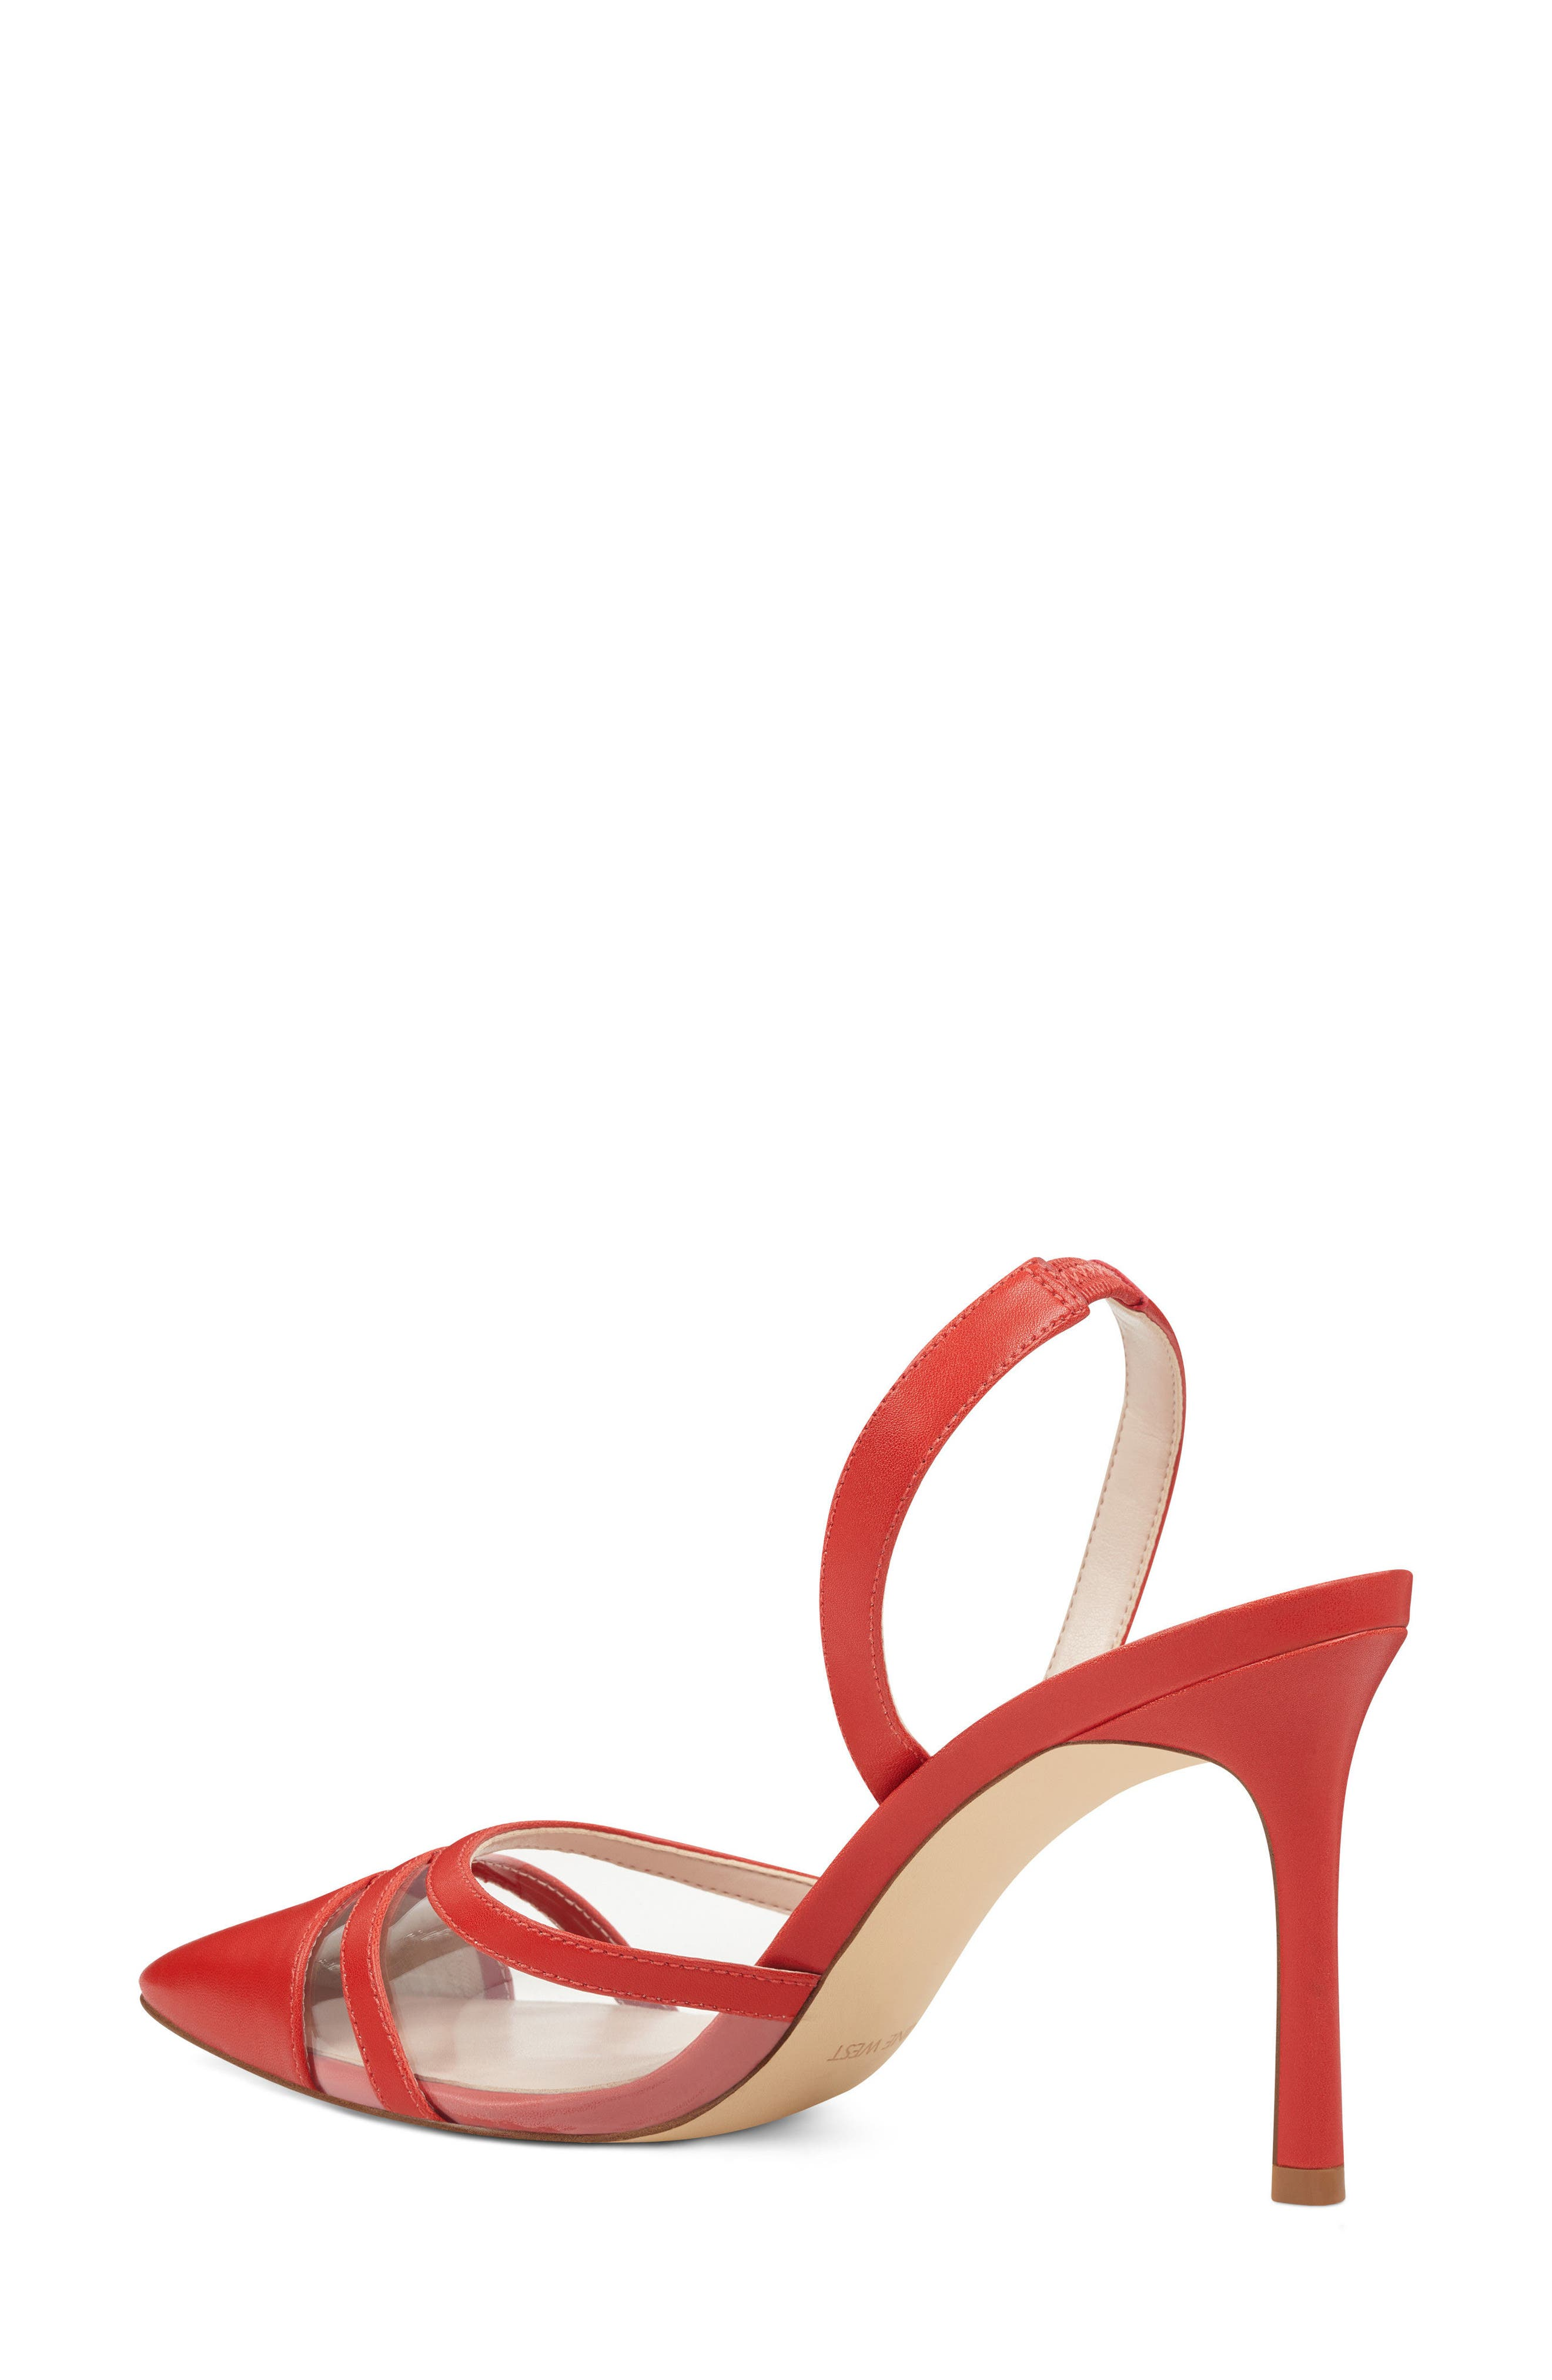 Exemplify Slingback Pump,                             Alternate thumbnail 2, color,                             Red Faux Leather